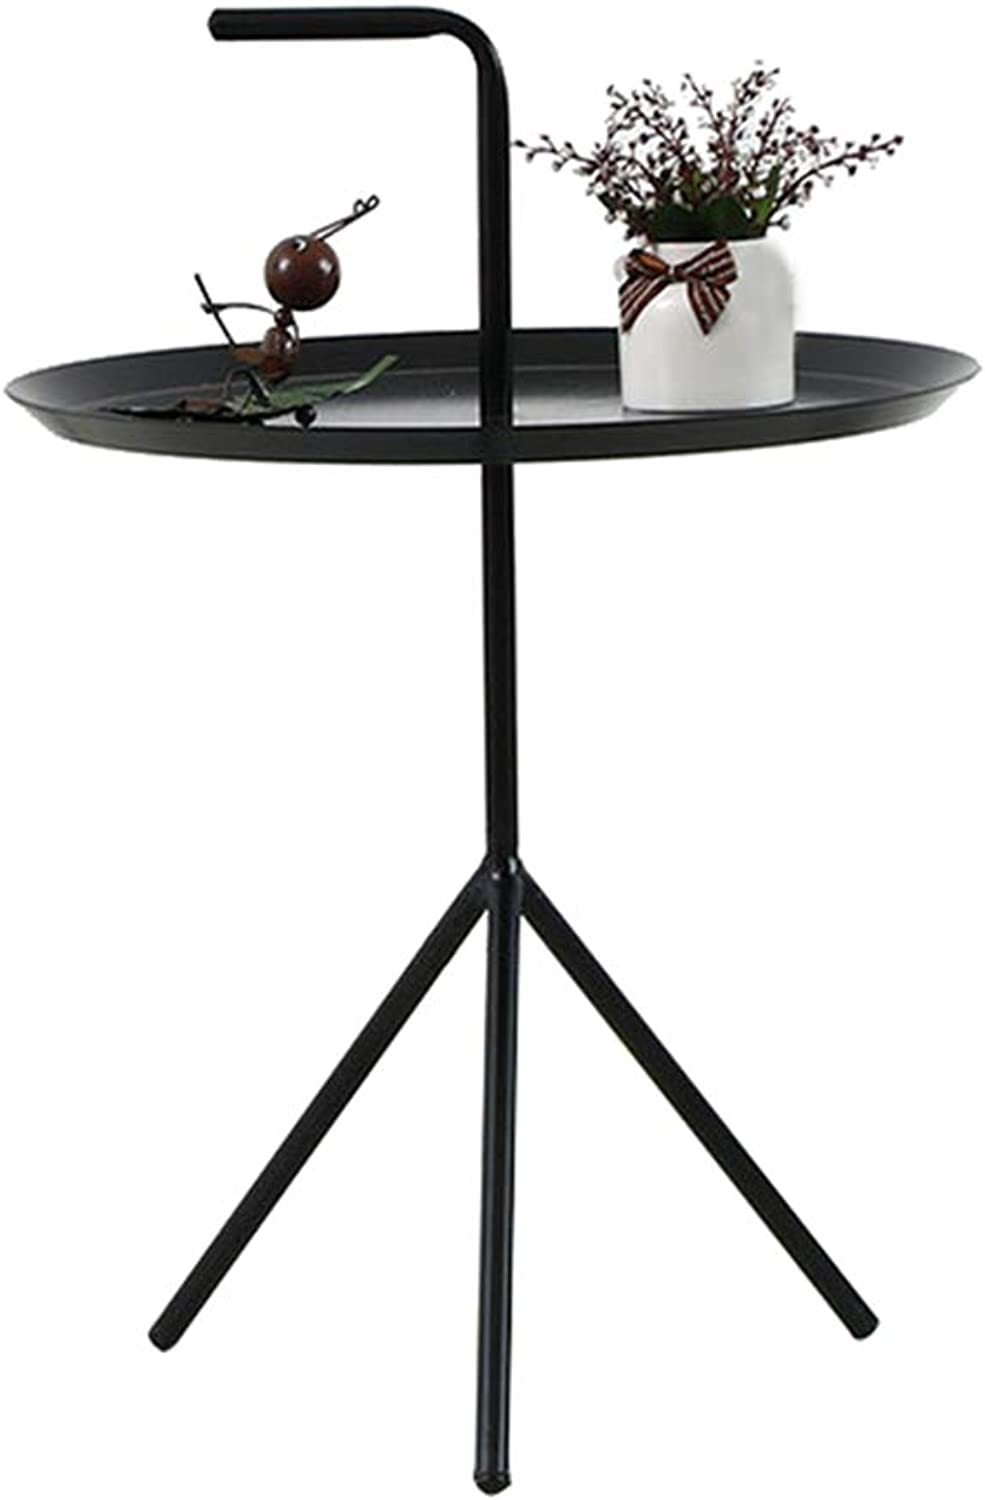 Creative Casual Balcony Table, Modern Minimalist Handle Wrought Iron Coffee Table - Bedroom Bedside Table - Nordic Living Room Sofa Side Table